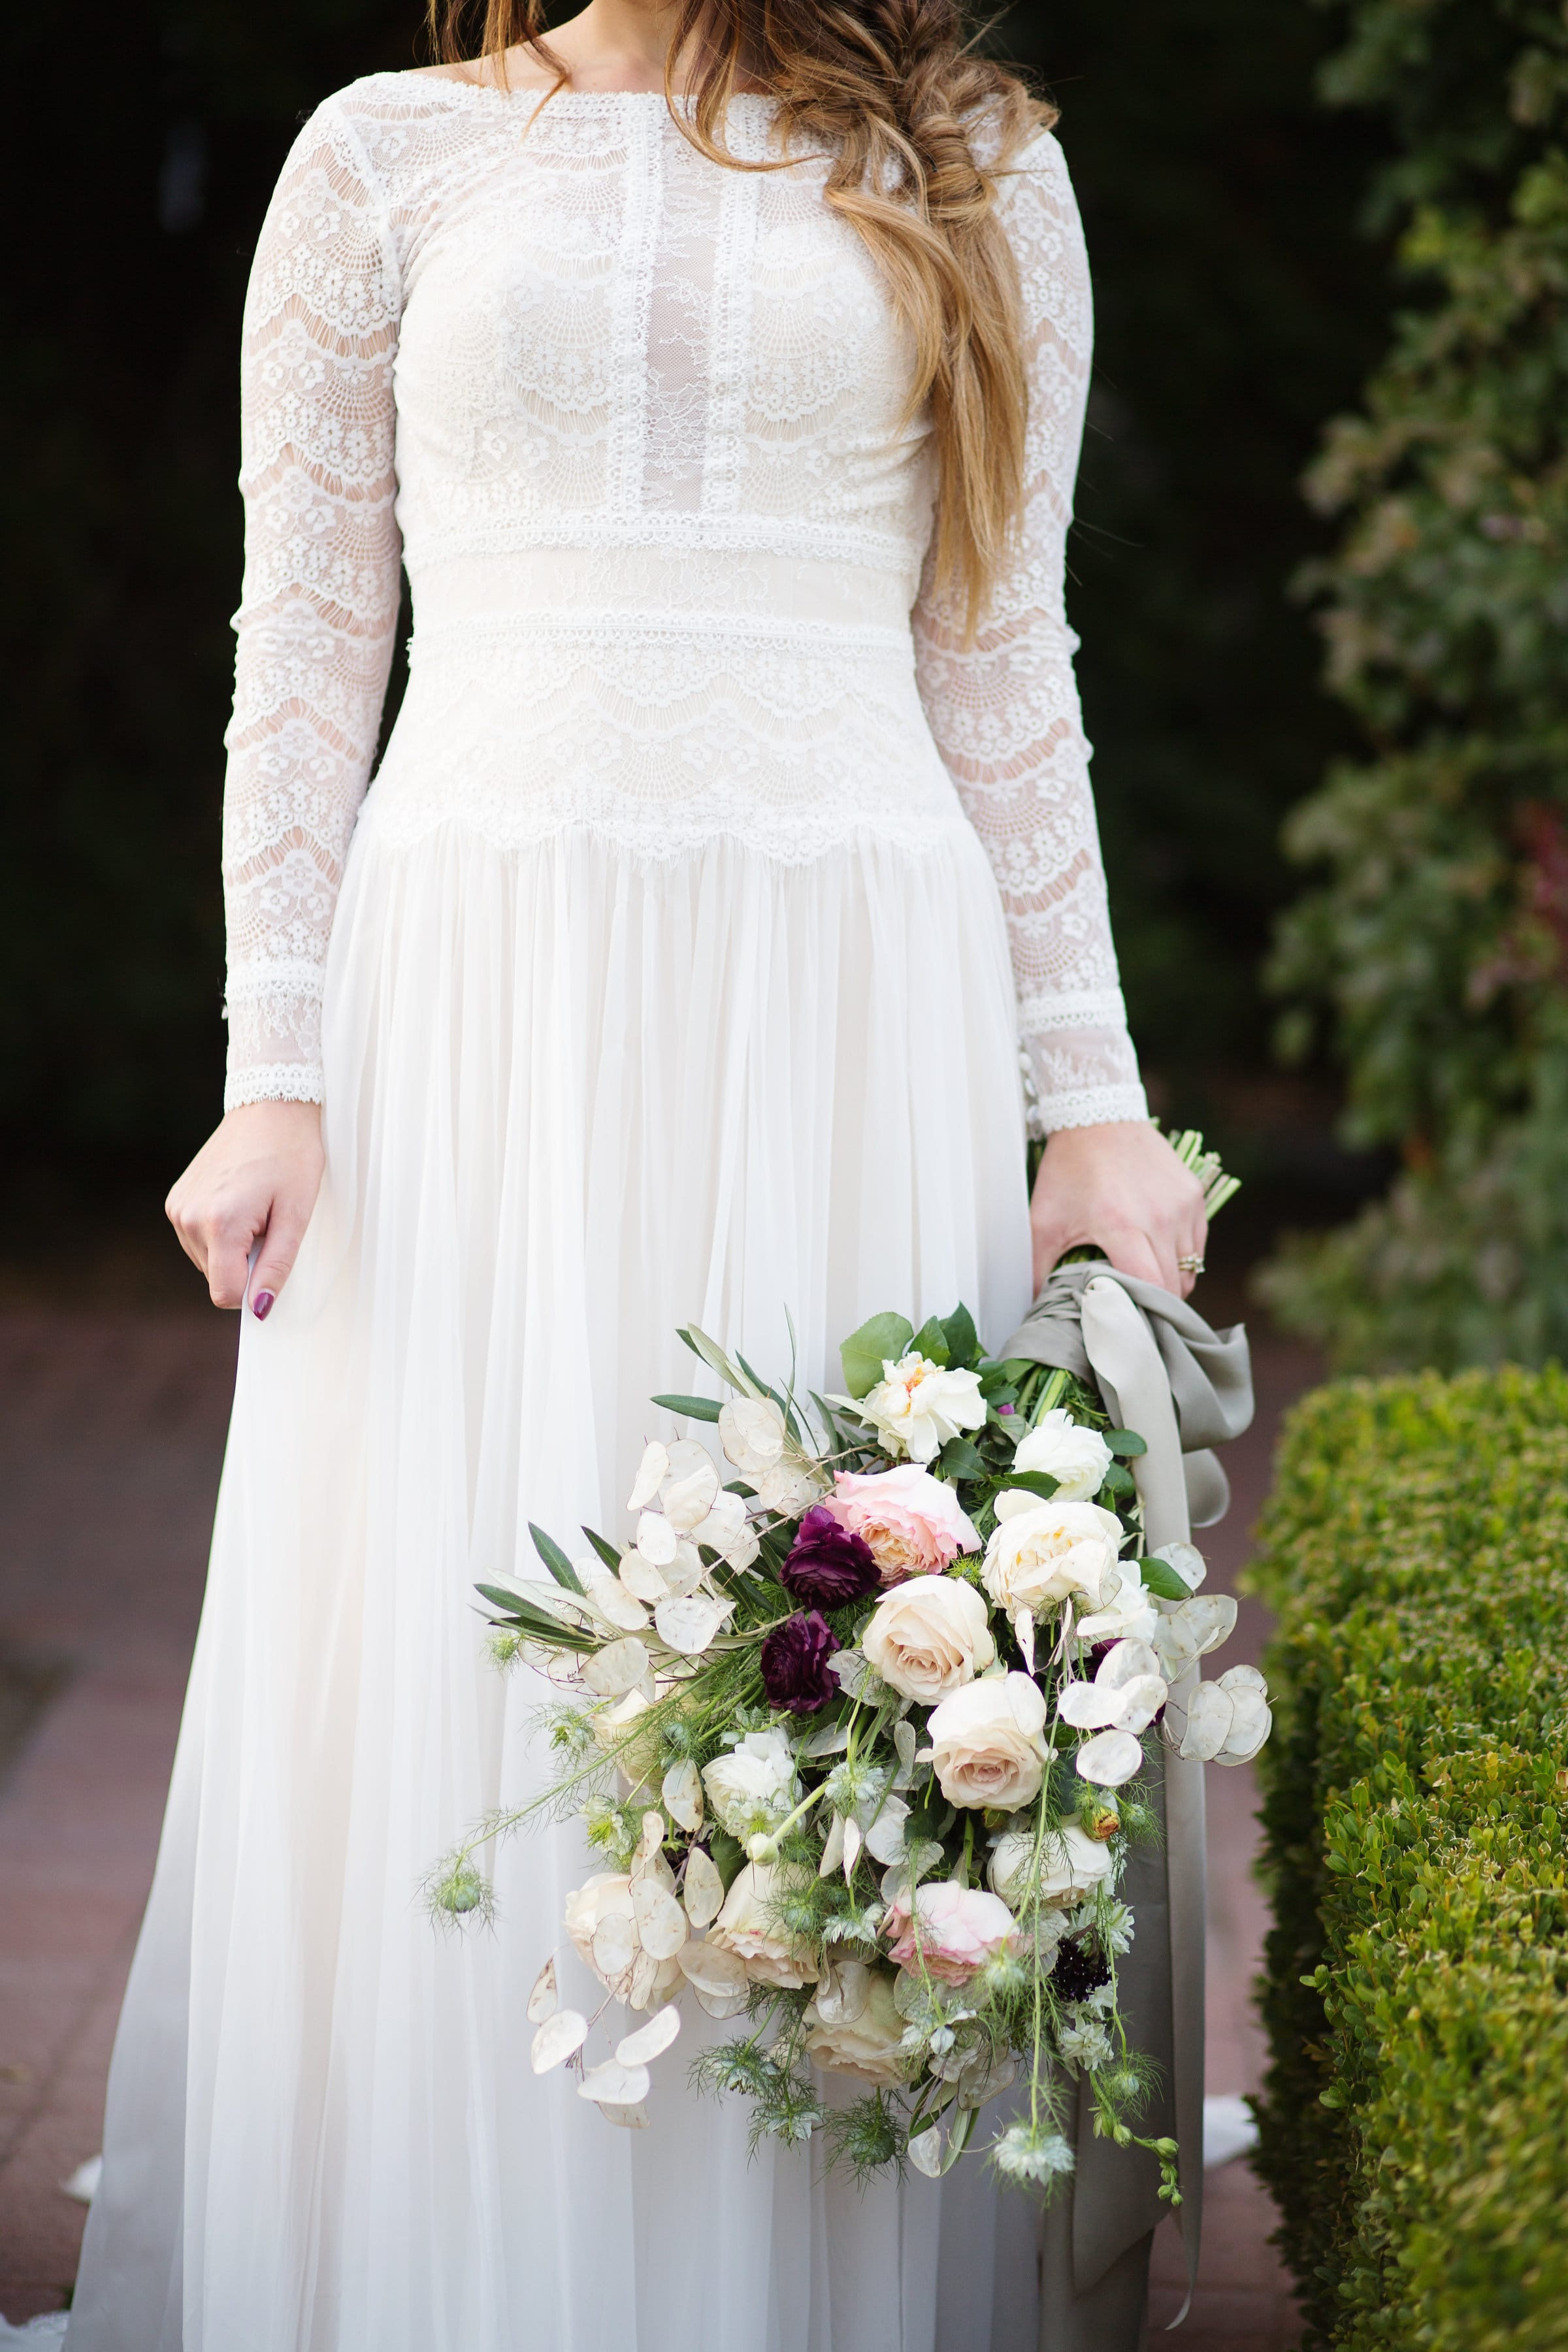 Illusion Lace Wedding Dress in English Garden Emilie Ann Photography - Styled Photo Shoot feat. Deirdre by Maggie Sottero